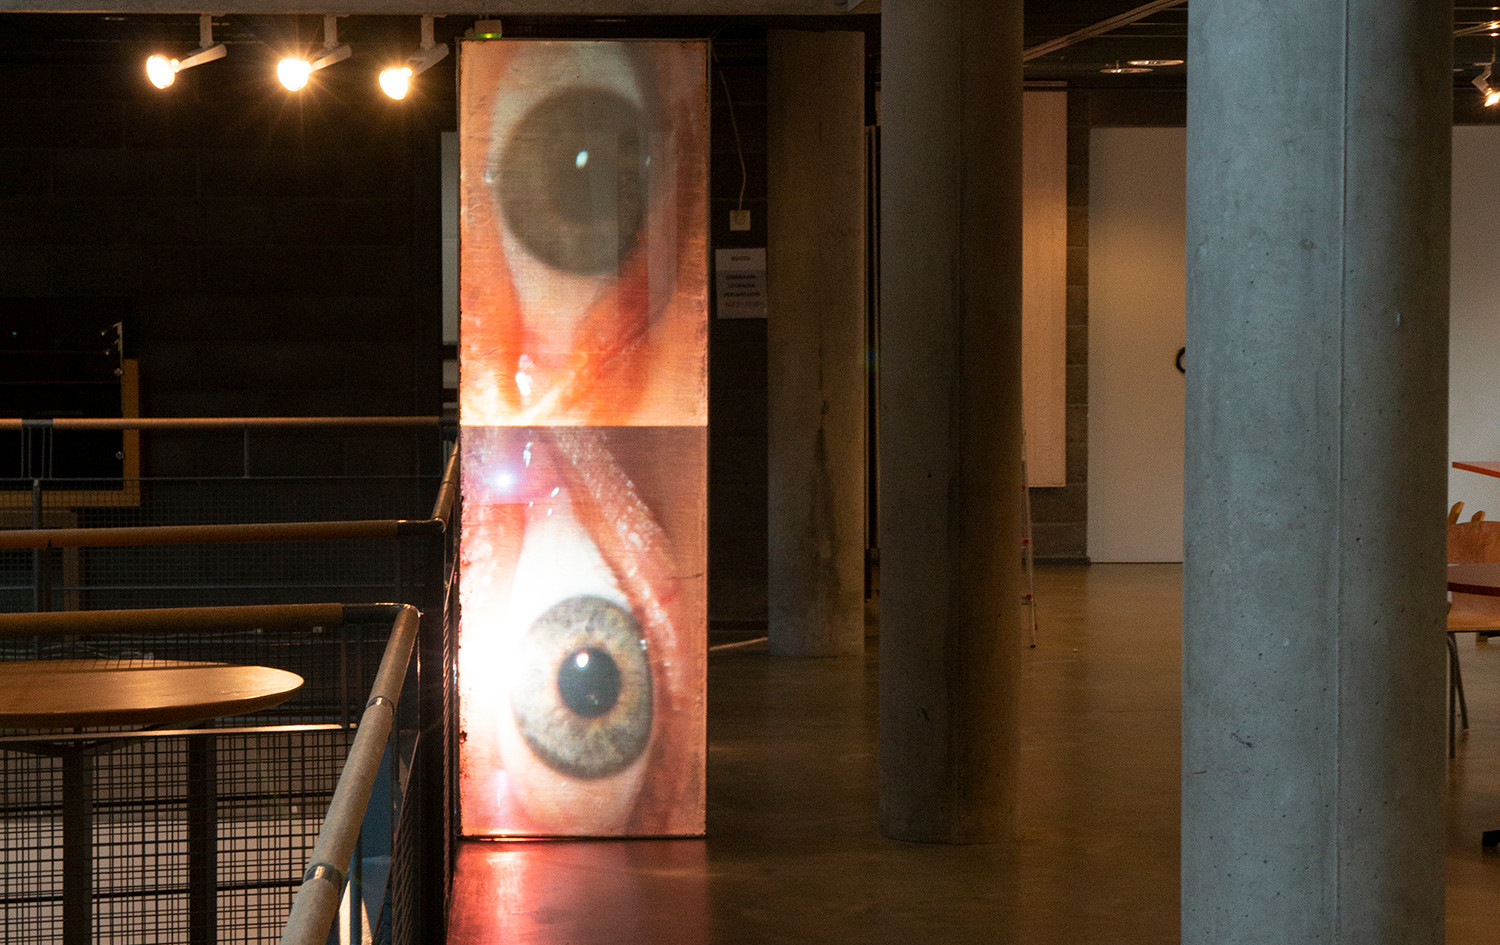 My eyes have seen you, installation, Aapo Korkeaoja